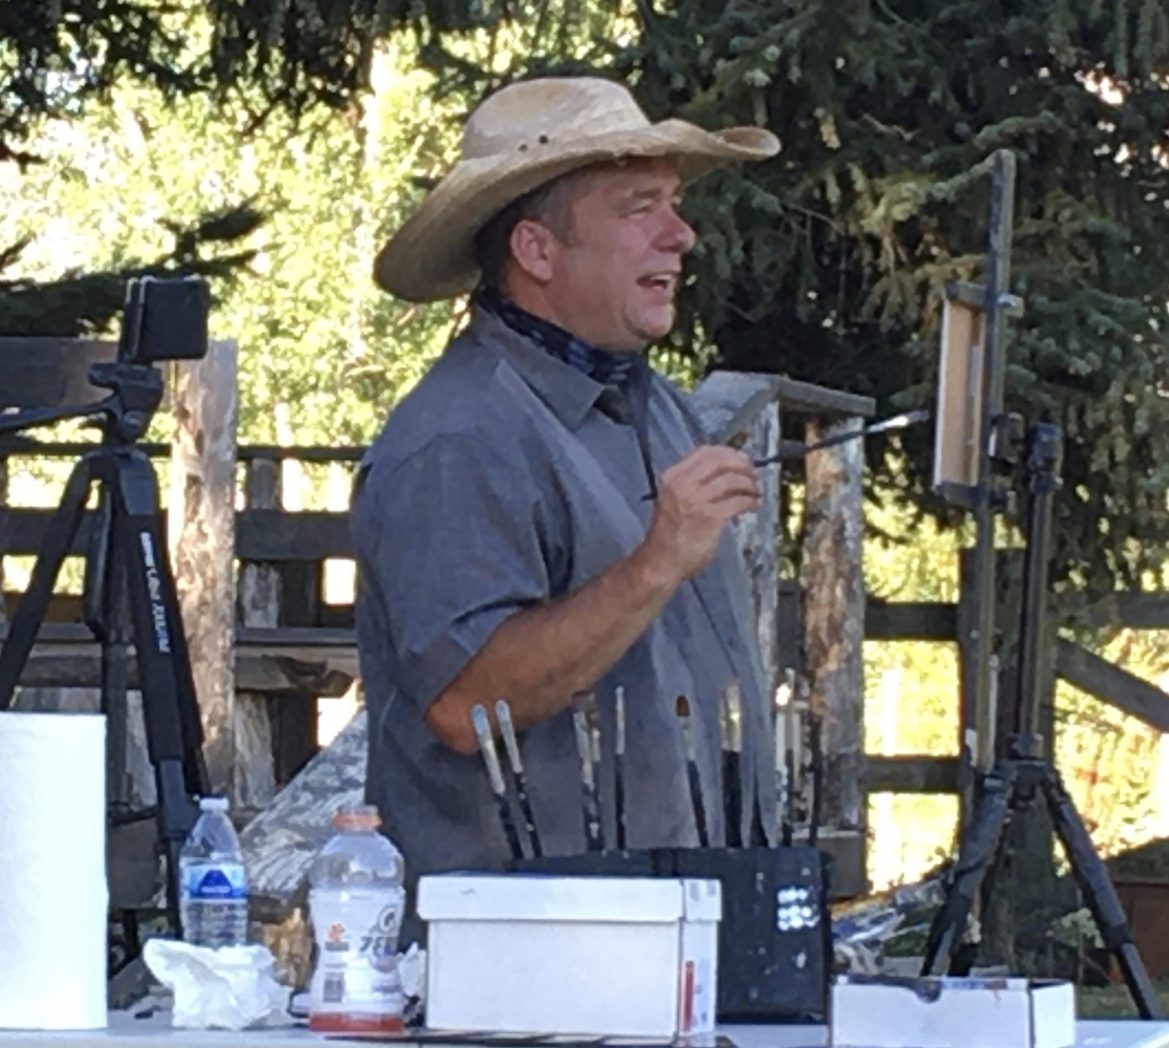 Outdoor oil painting demonstration was amazing